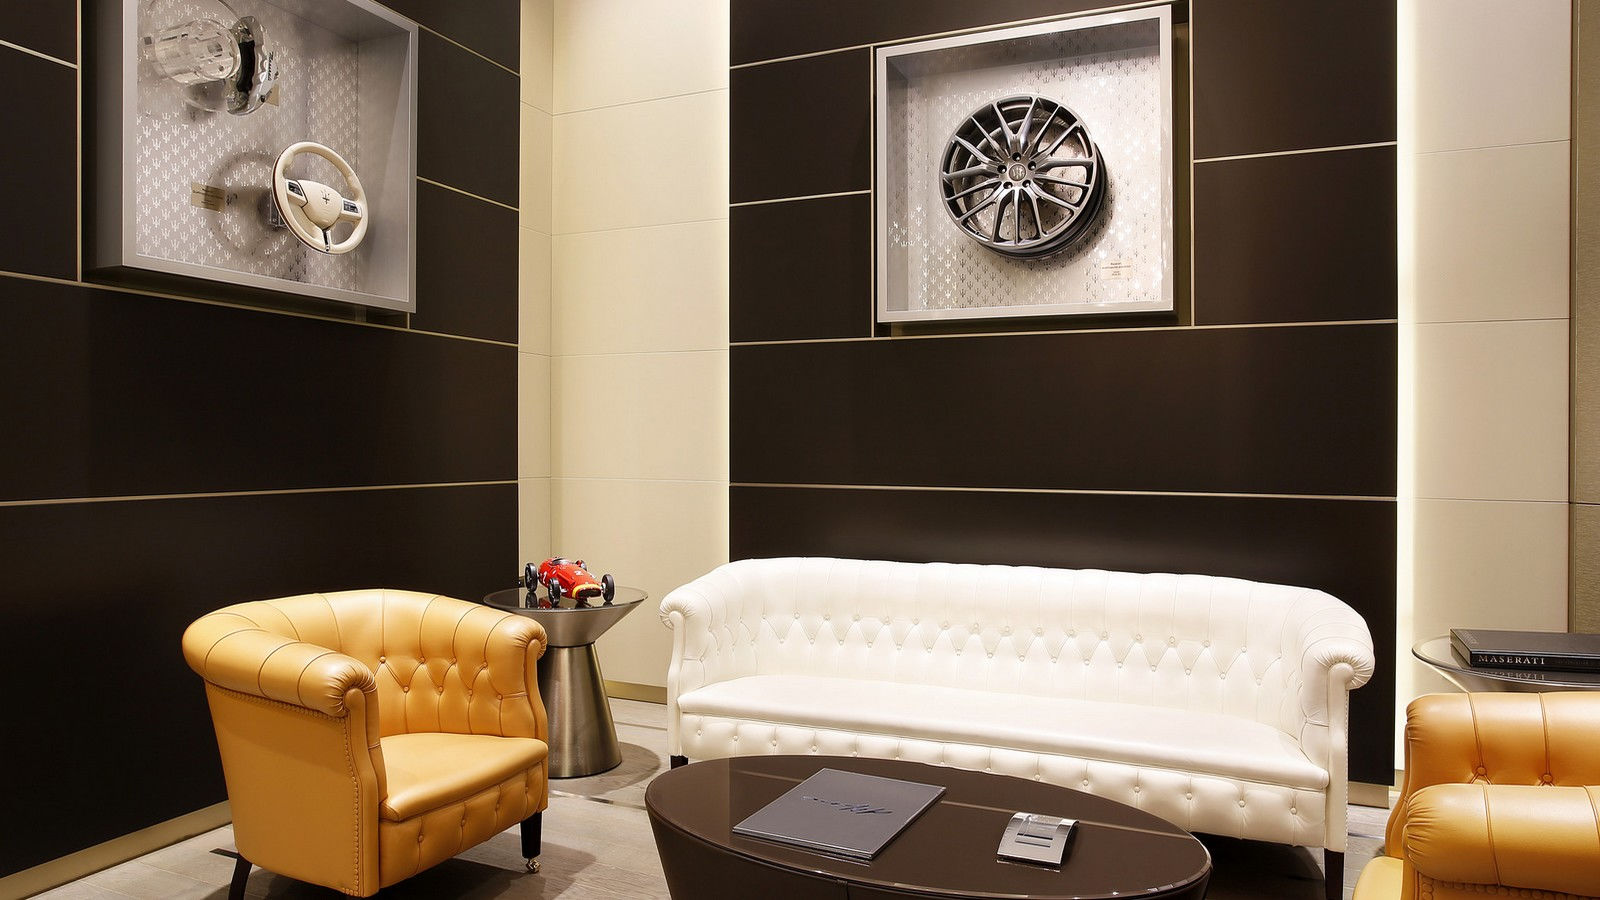 Maserati wheel display in Cigar room